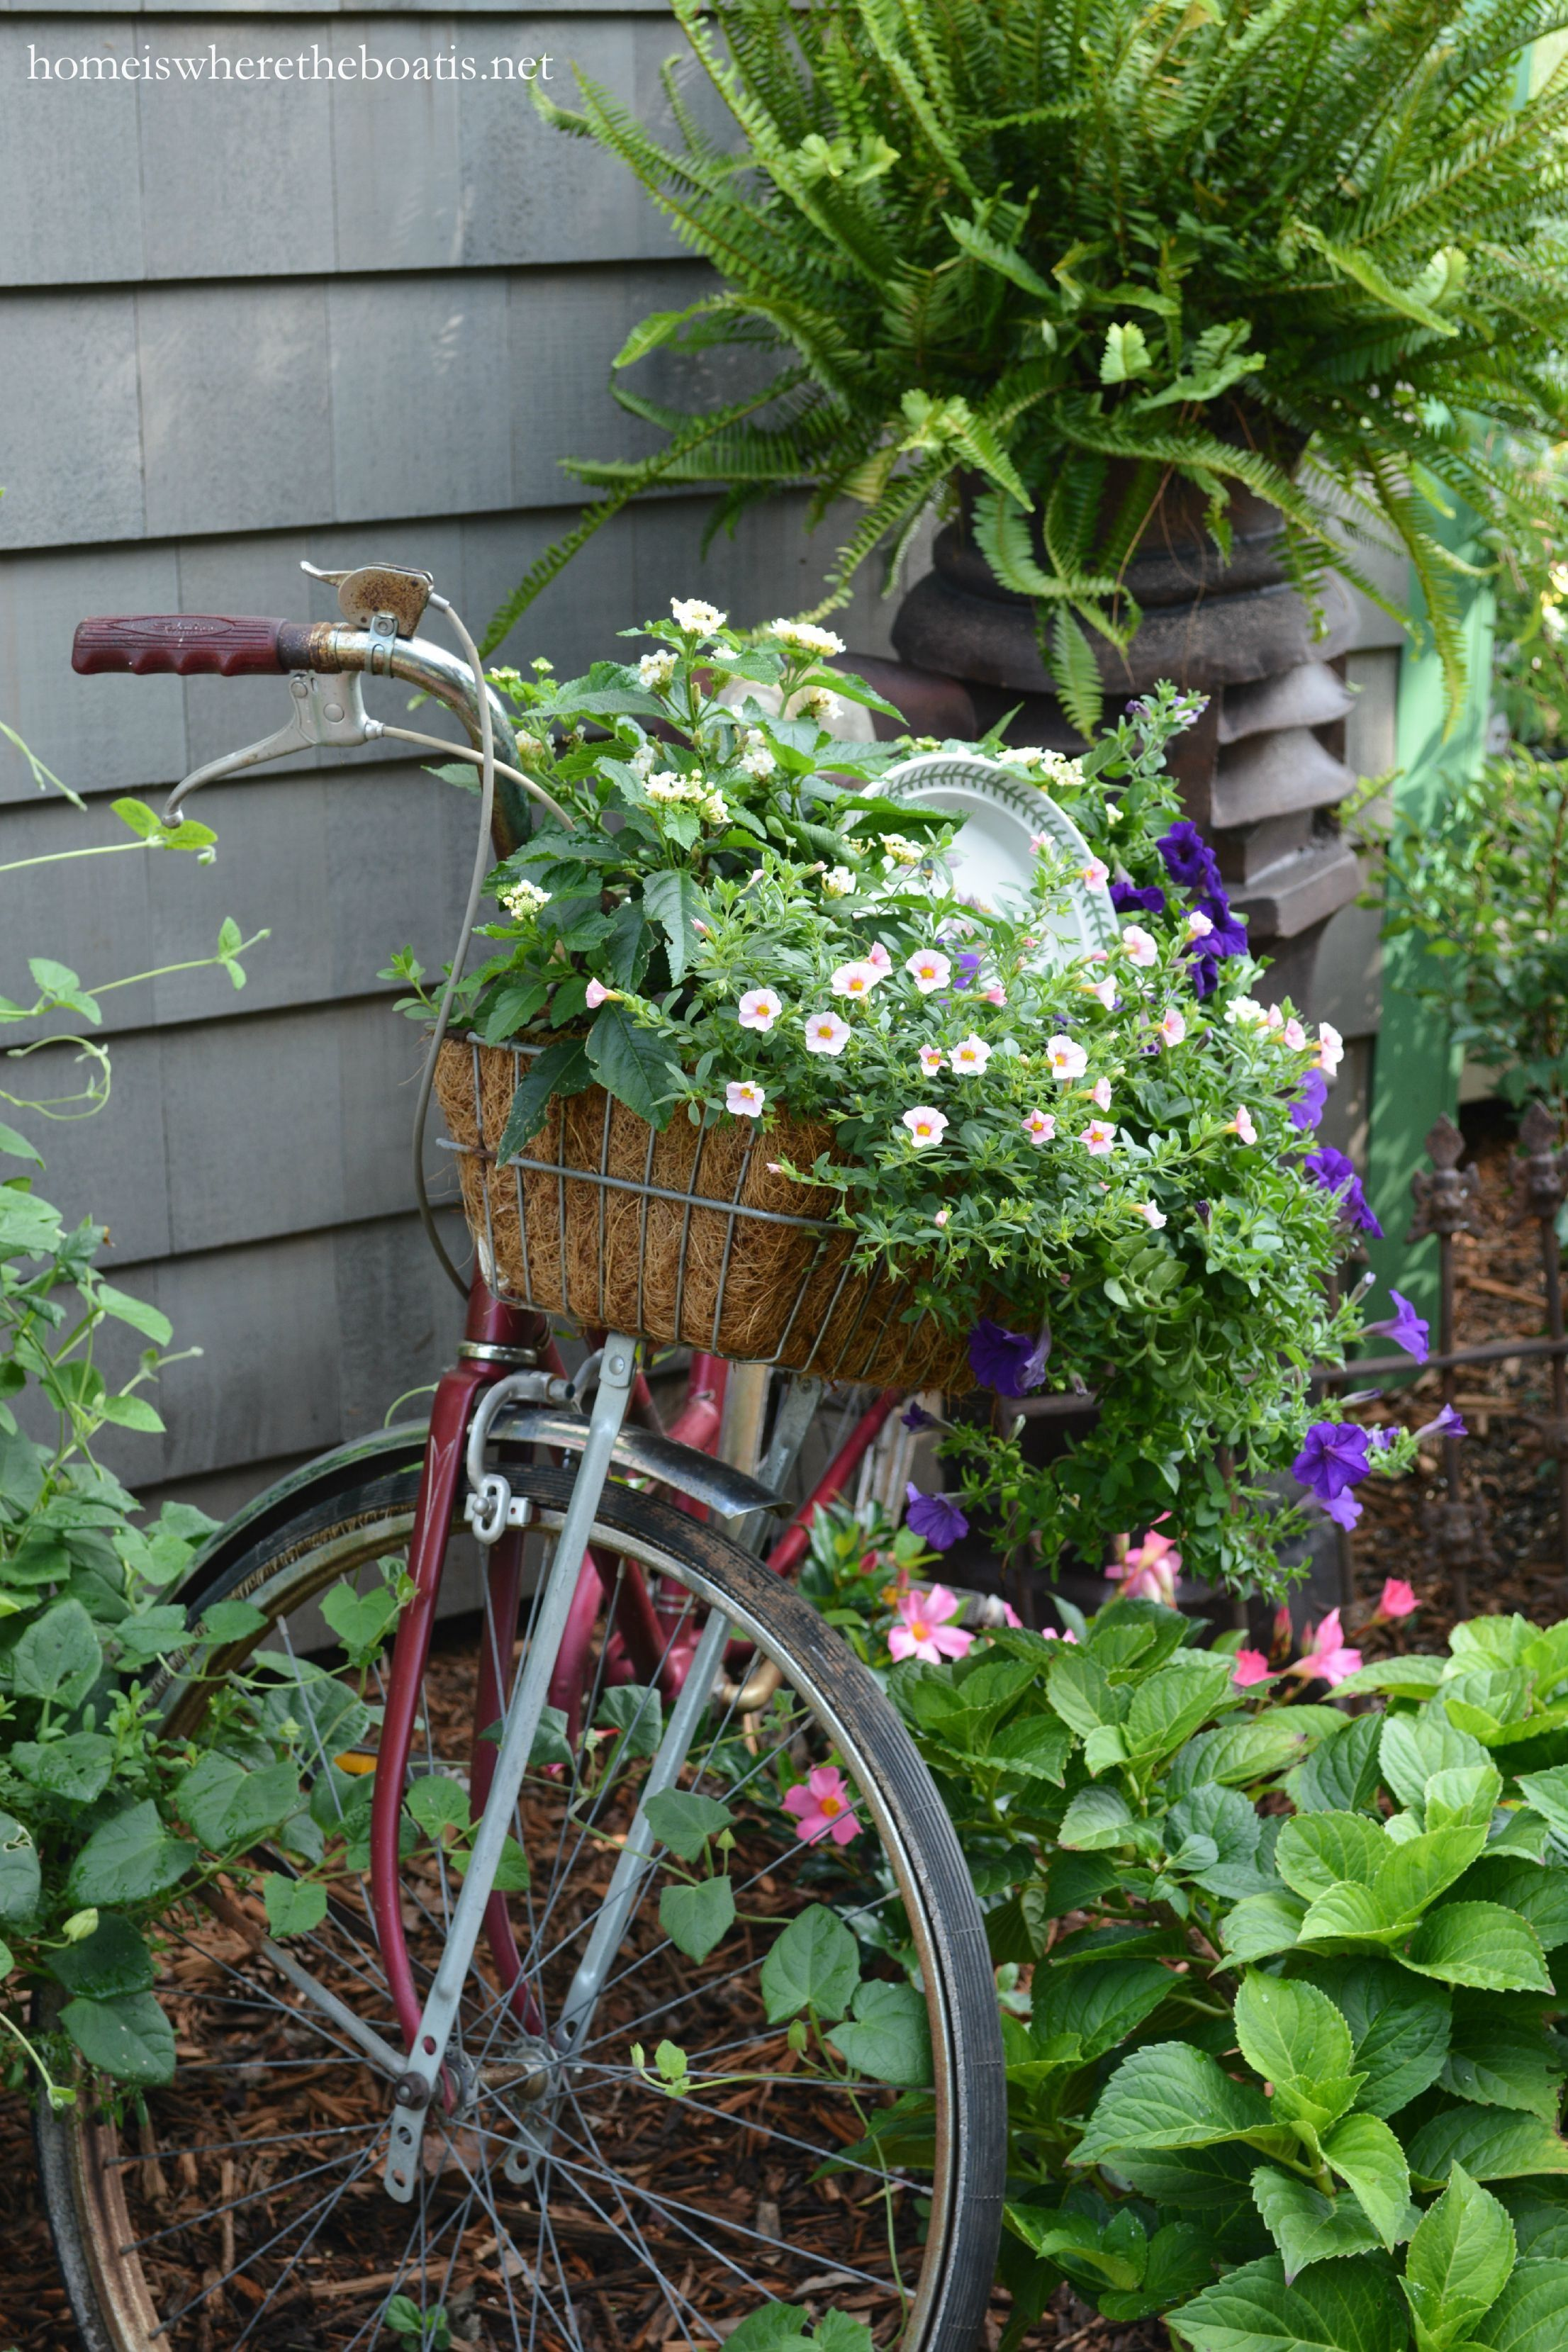 Gardening On Wheels: A Bicycle Planter | Homeiswheretheboatis.net